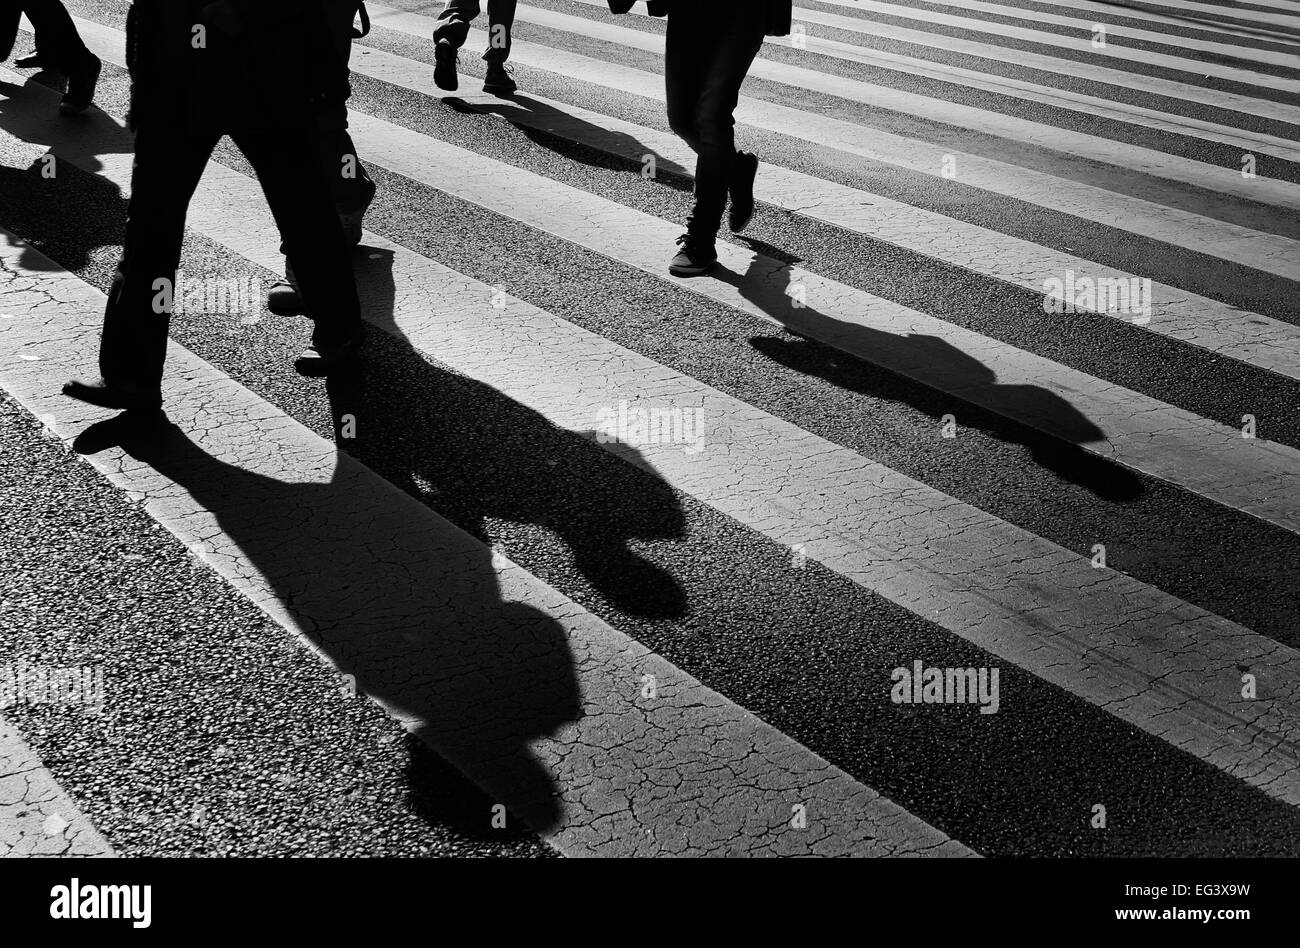 black and white photograph of people and shadows walking on a city street crossing, Budapest Hungary. - Stock Image